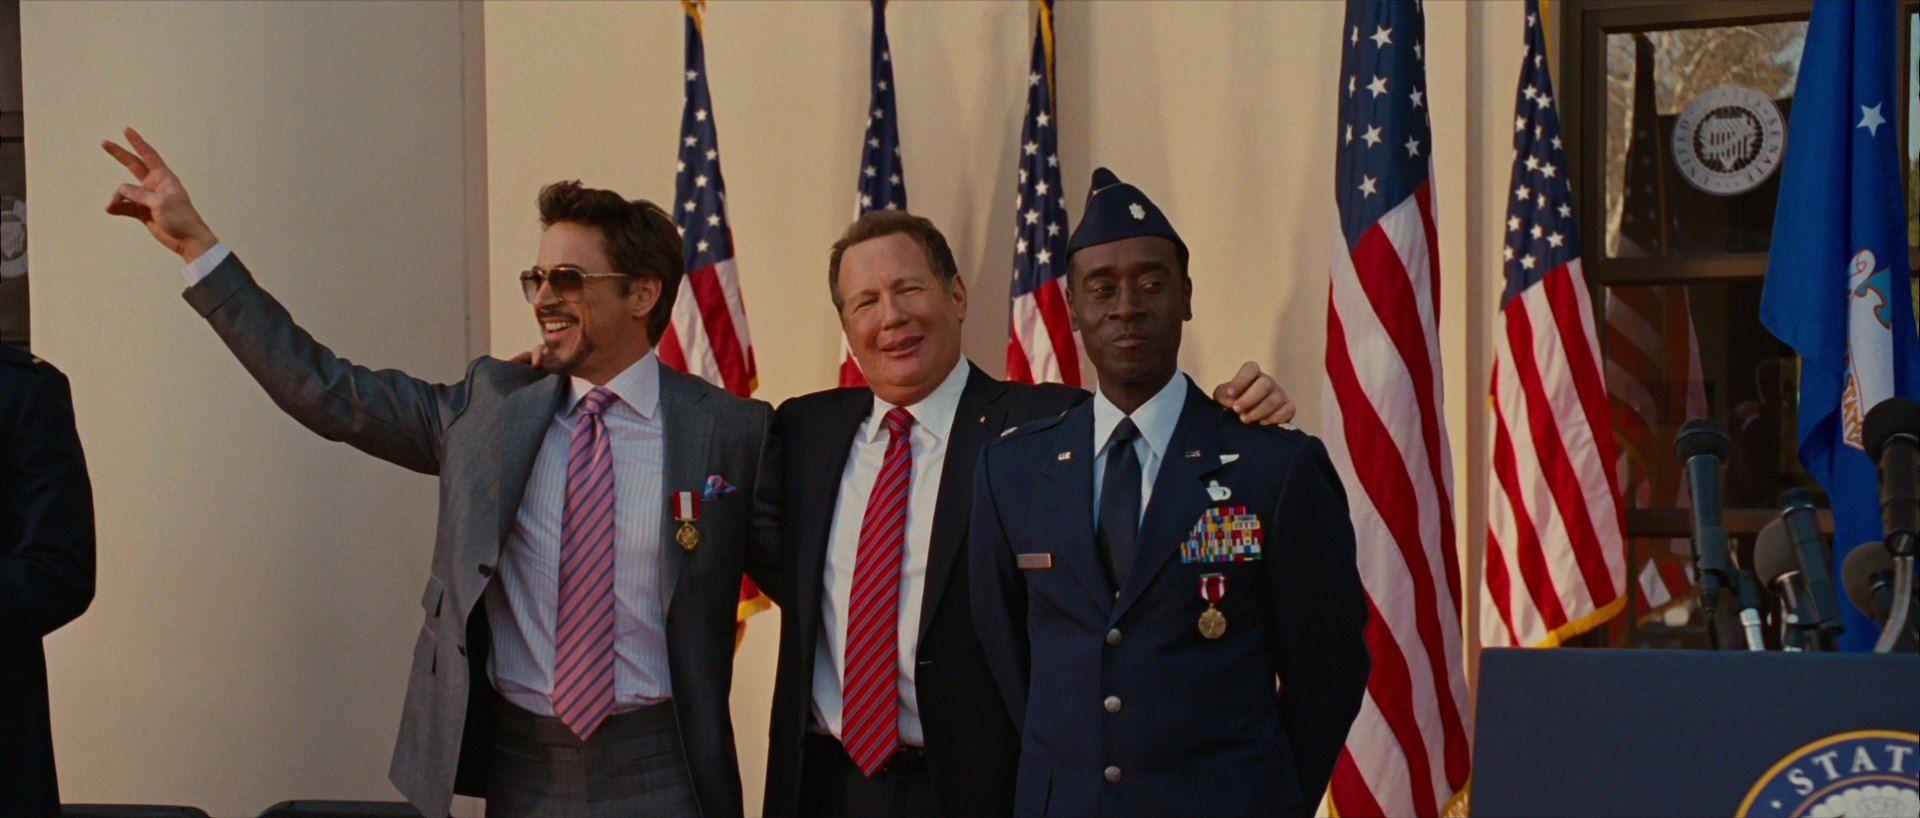 Anthony Stark (Earth-199999), James Rhodes (Earth-199999) and Senator Stern (Earth-199999) from Iron Man 2 (film) 001